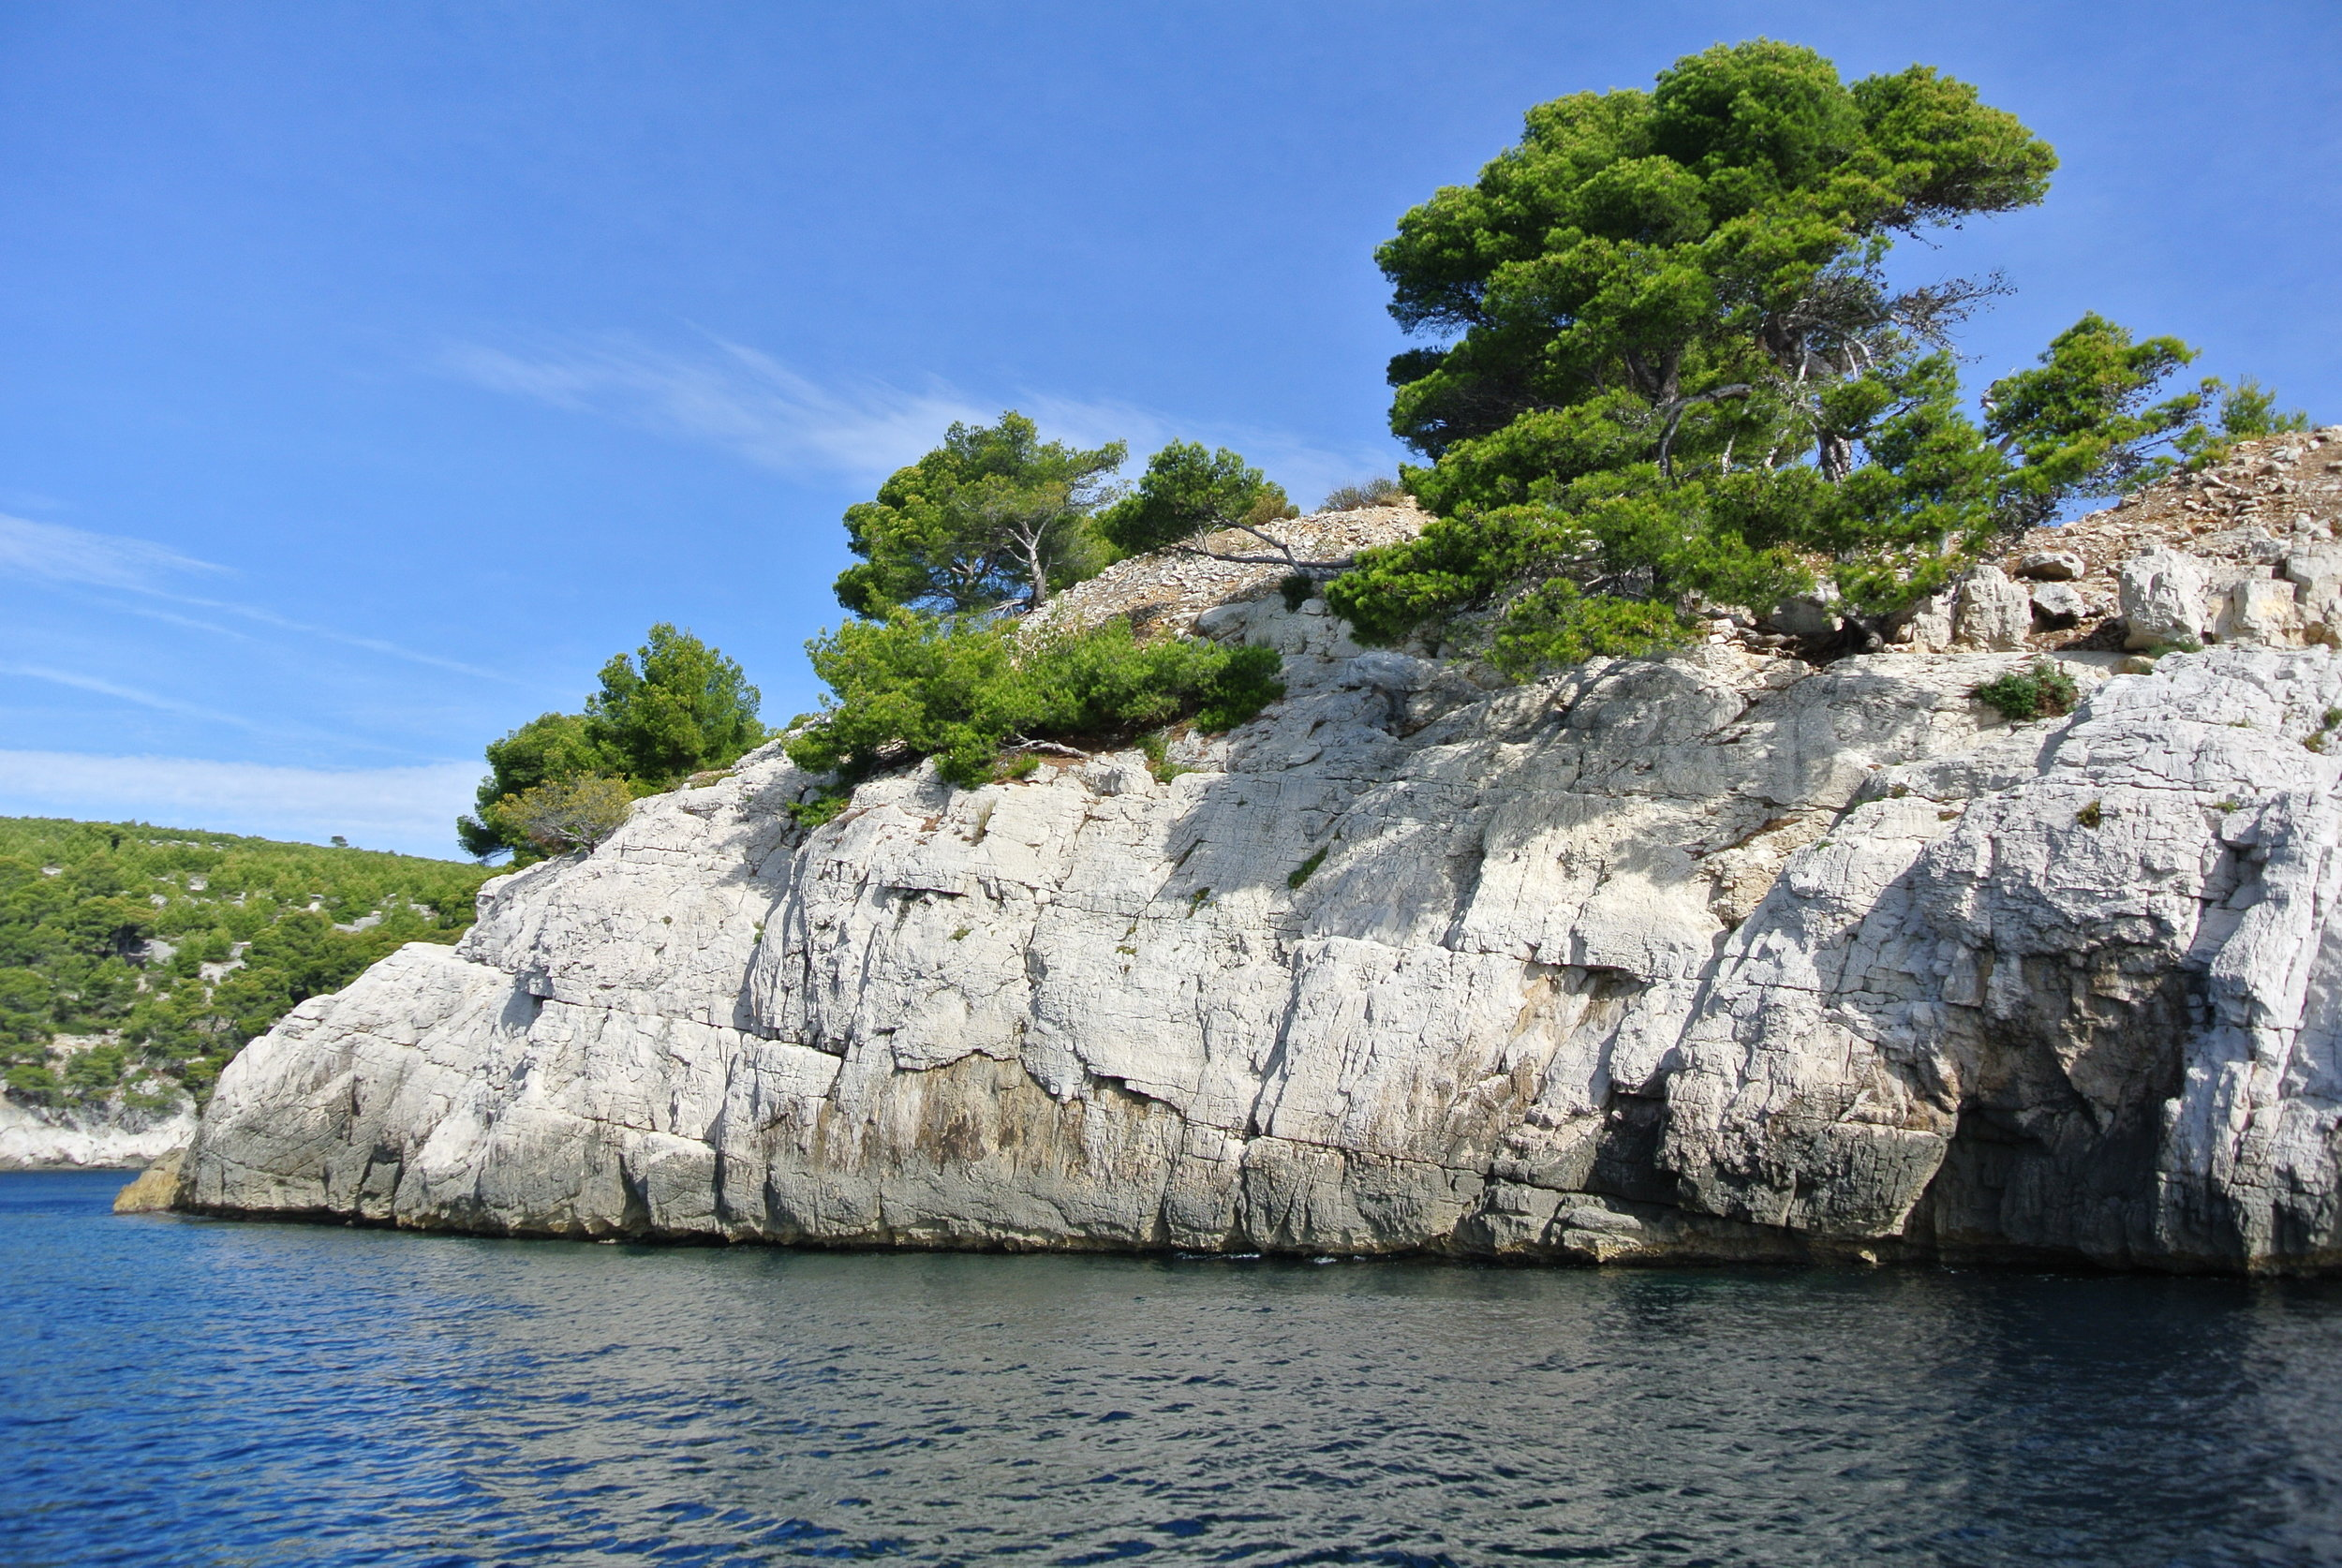 The Gorgeous Calanques Of Cassis The Not So Innocents Abroad